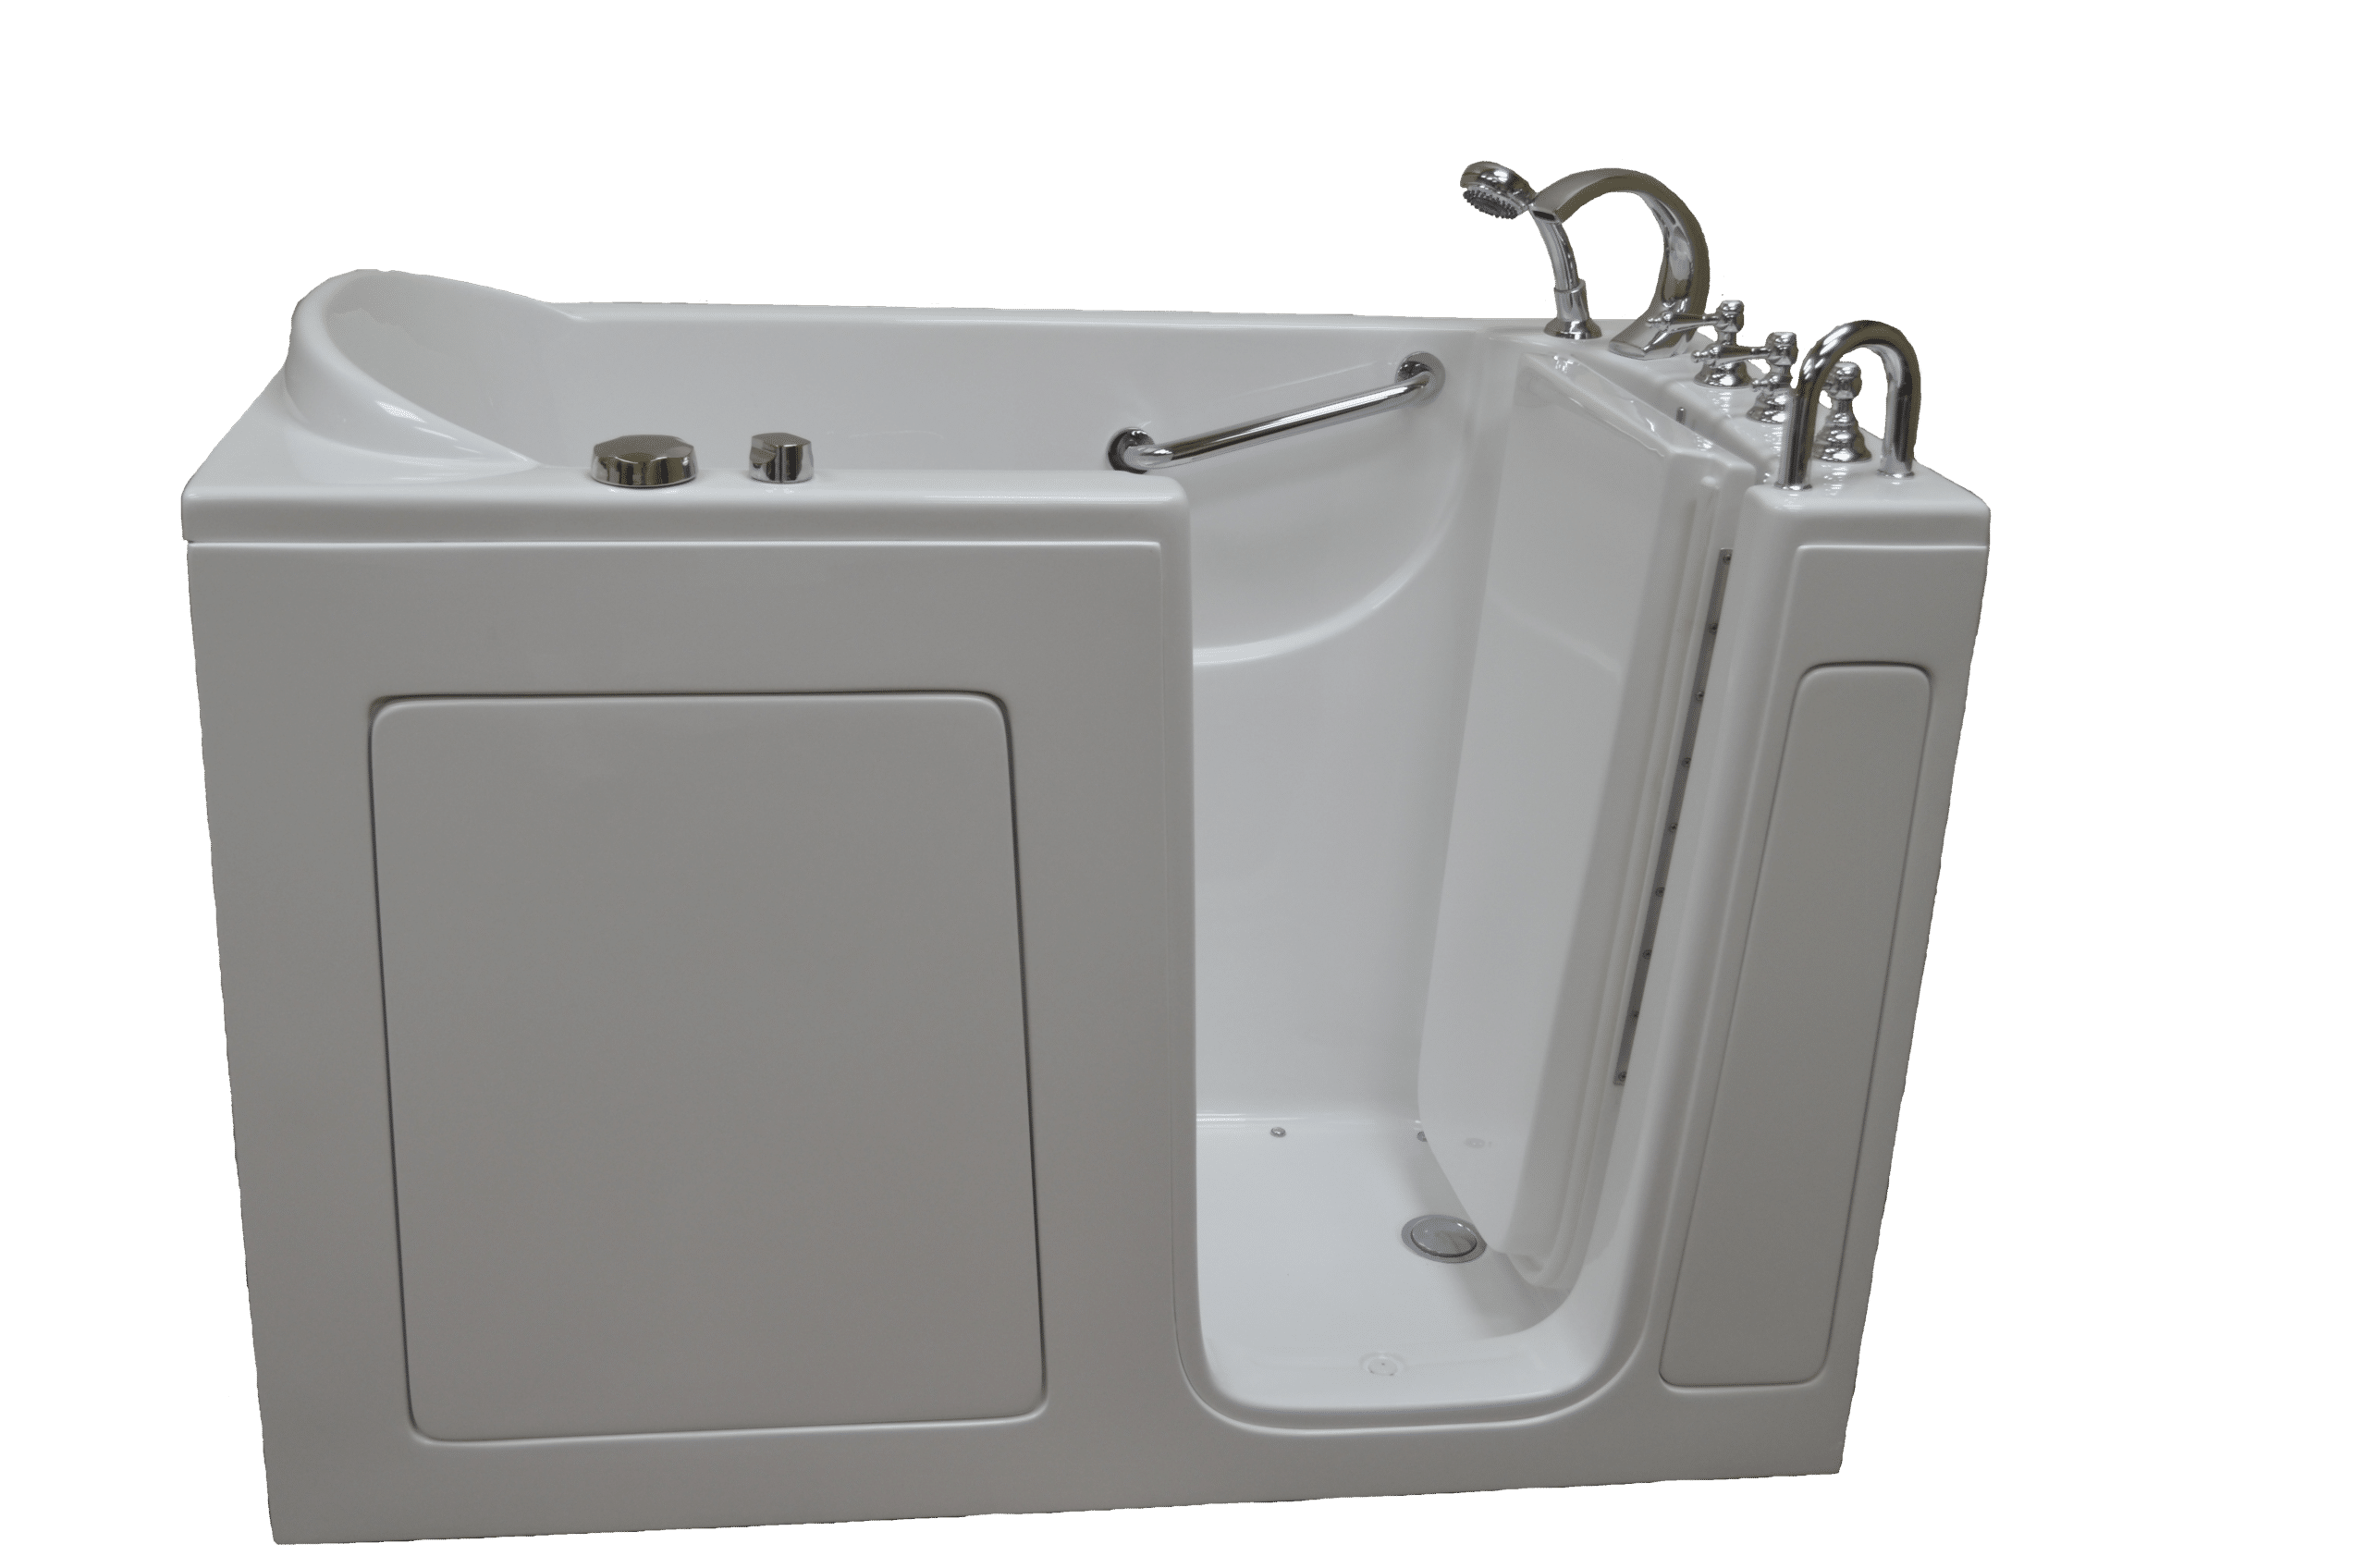 green bay tub tundraland in walk bathtubs bath photo walkin accessible baths gallery